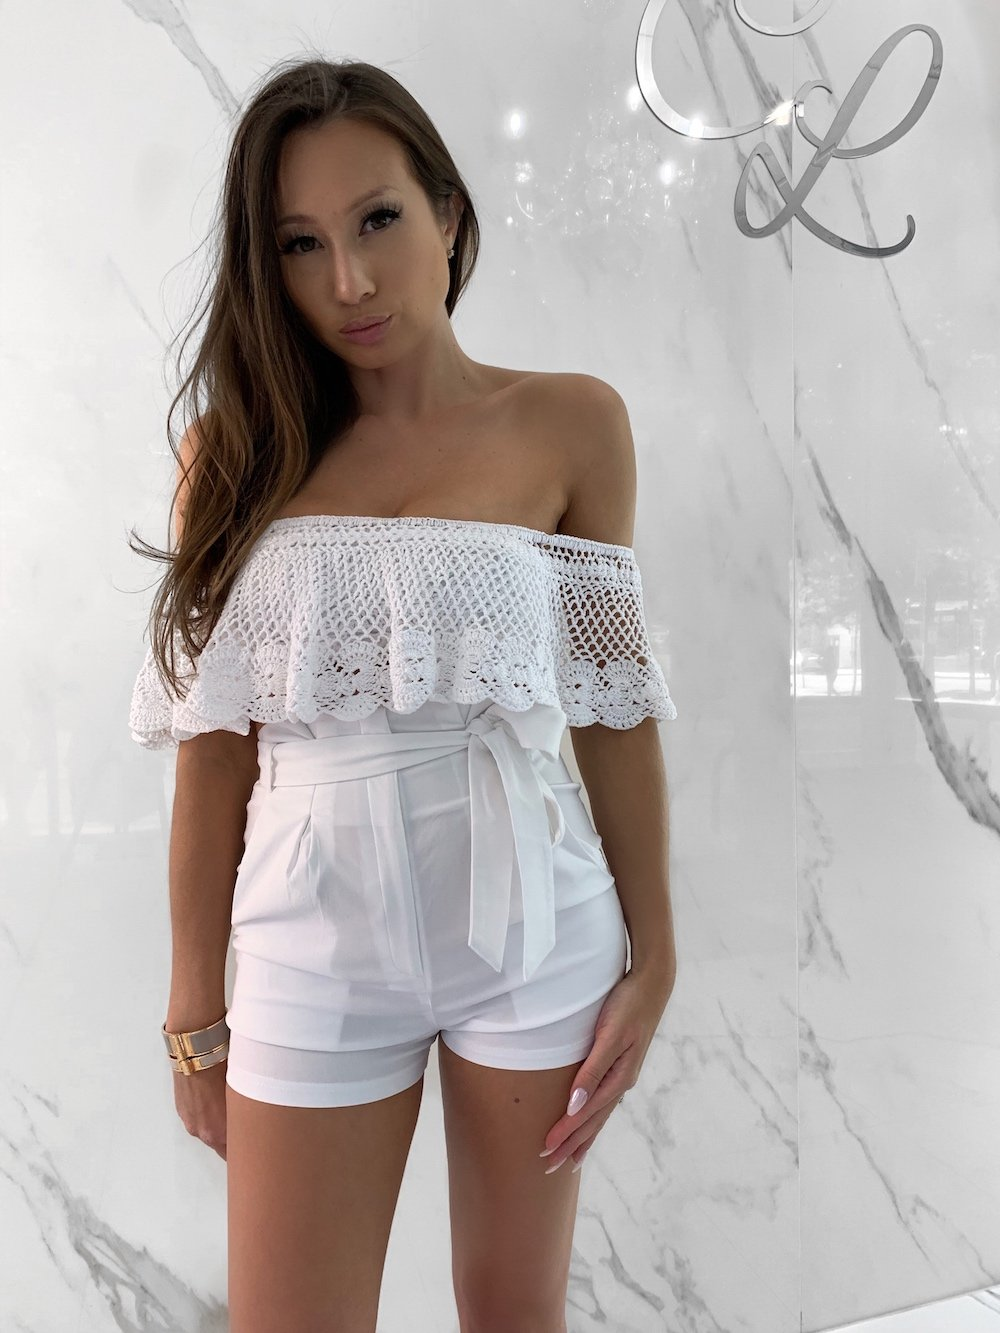 Notik Tops, Women's White Tops